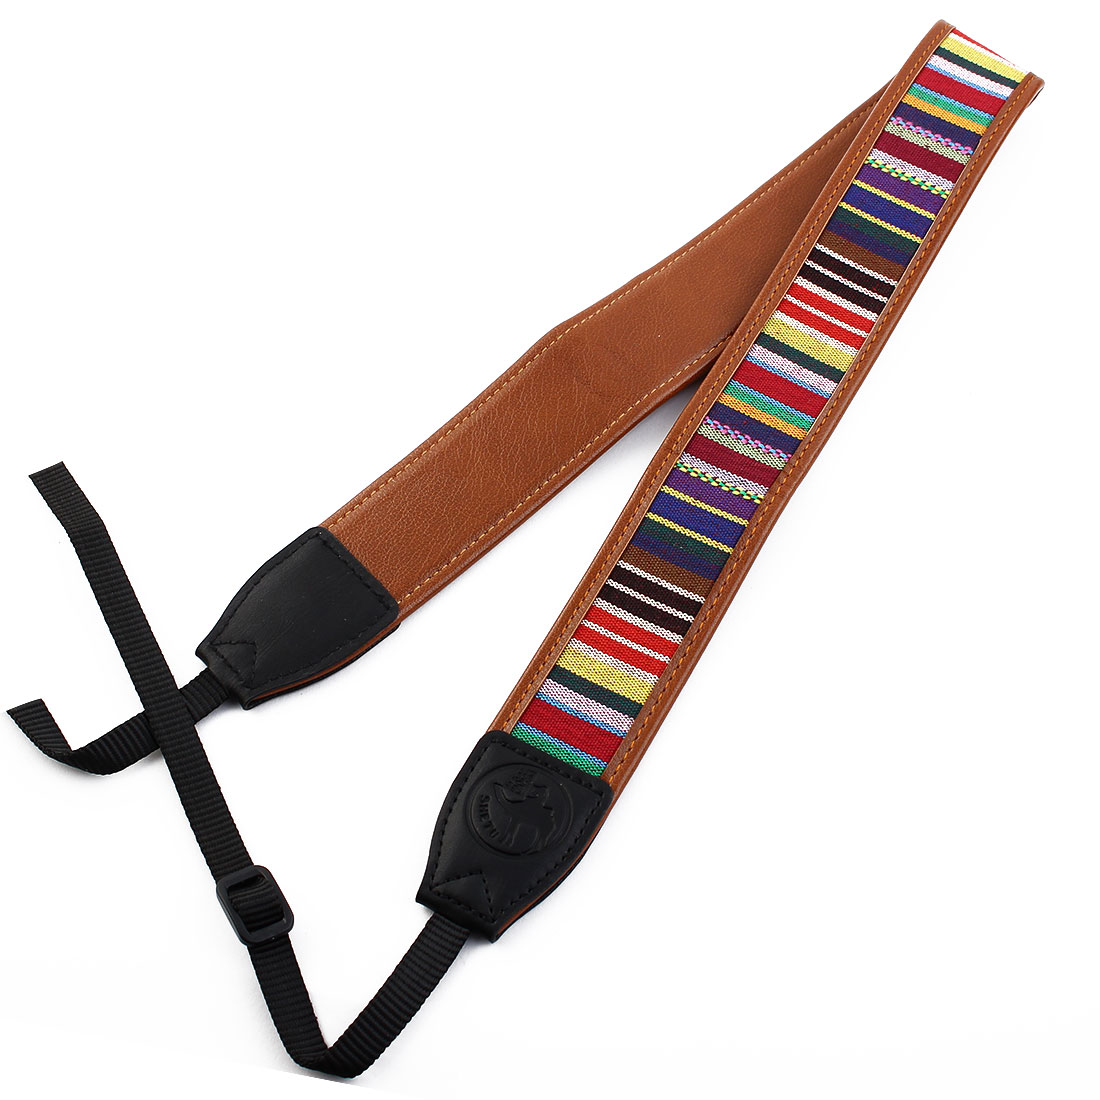 SHETU Authorized Classical Style Camera Shoulder Neck Strap Multicolor for DSLR